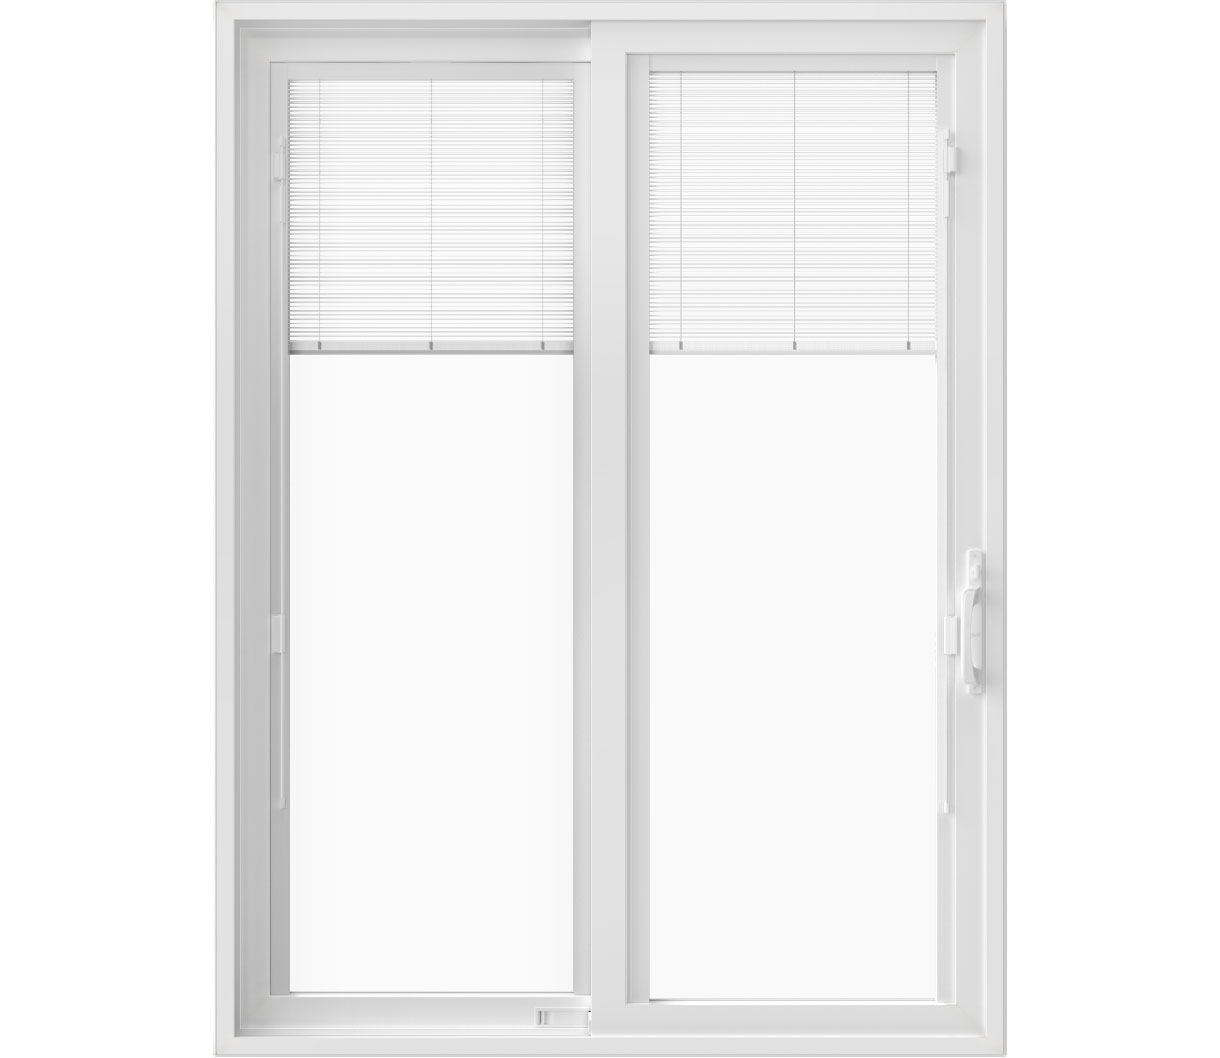 Pella 250 Series Sliding Patio Doors Pella